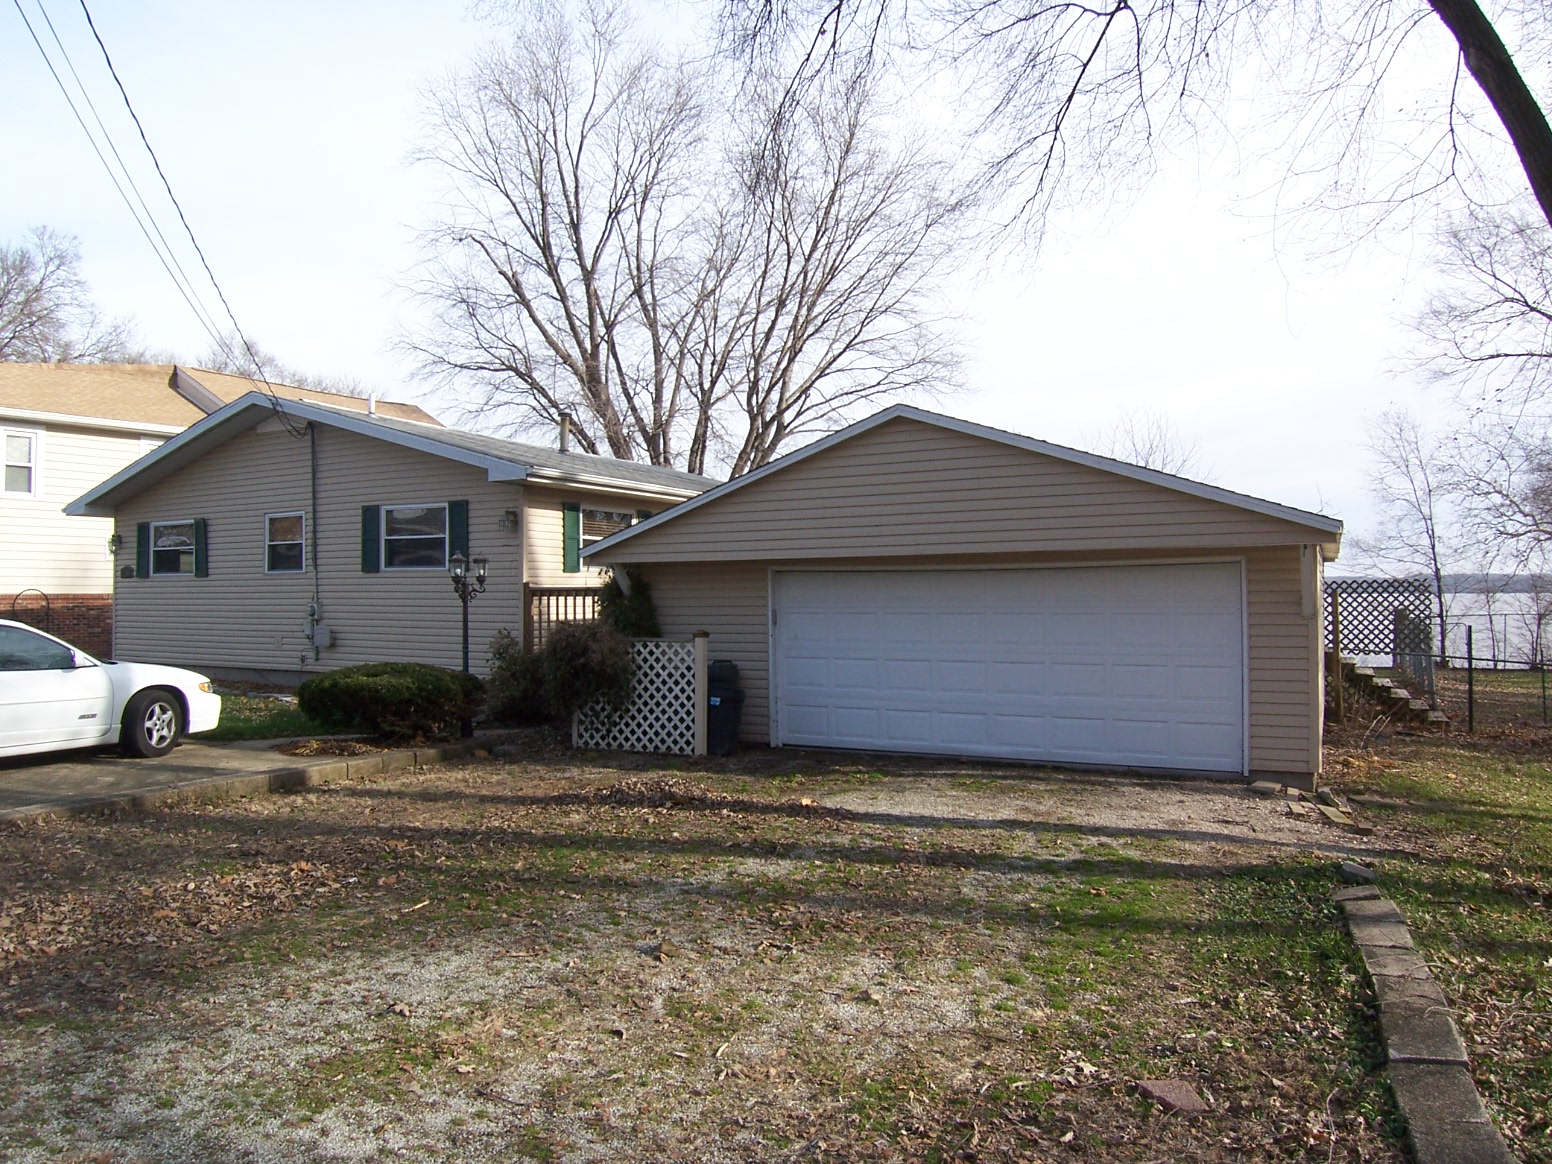 12106 N Riverview Road, Chillicothe, Illinois 61523